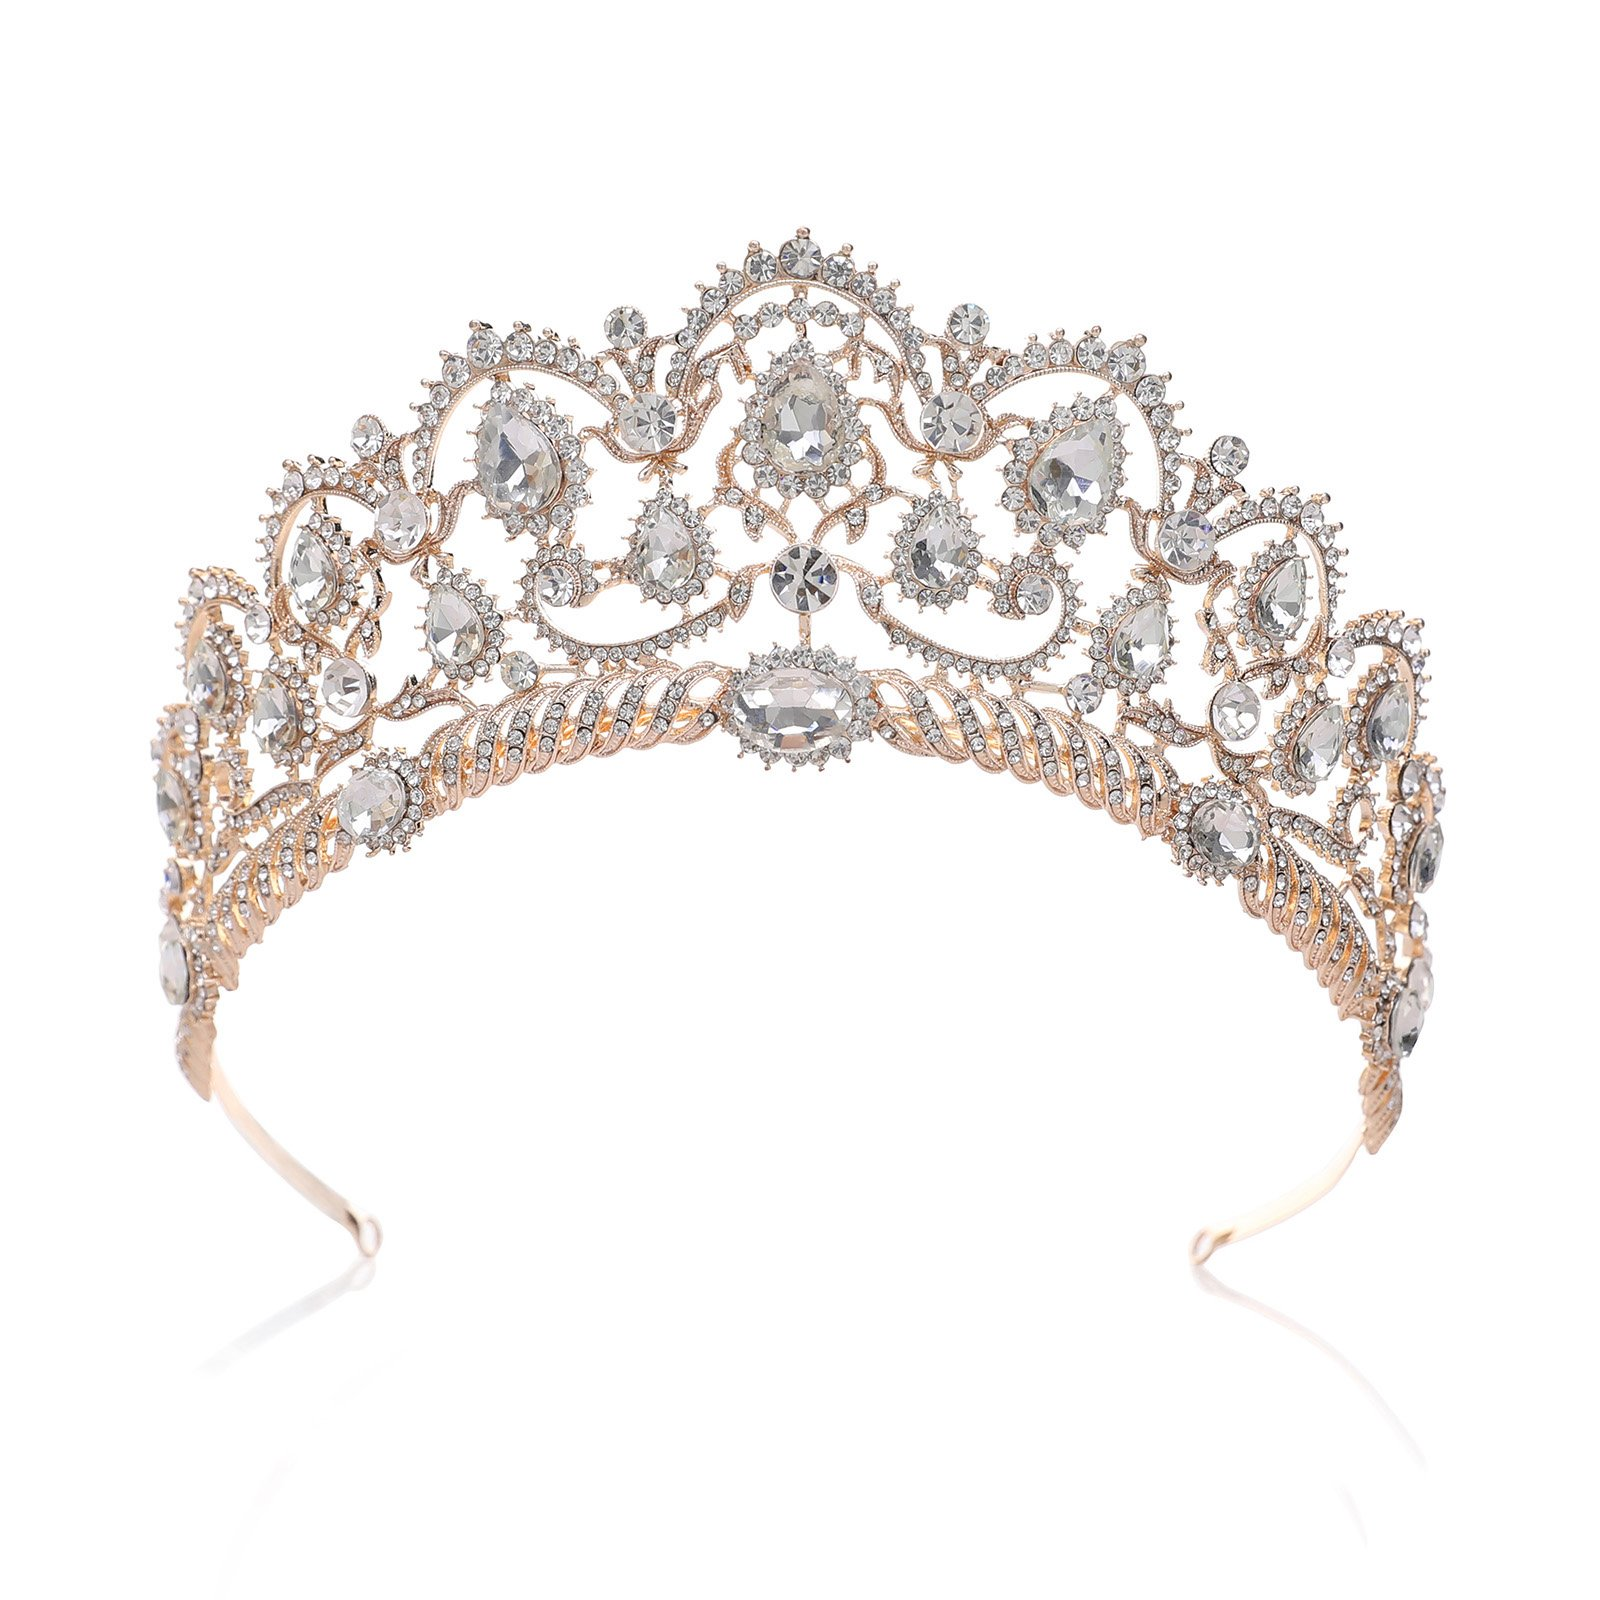 SWEETV Rose Gold Wedding Tiaras and Crowns for Women, Rhinestone Queen Tiara Headpieces for Women Crystal Hair Accessories by SWEETV